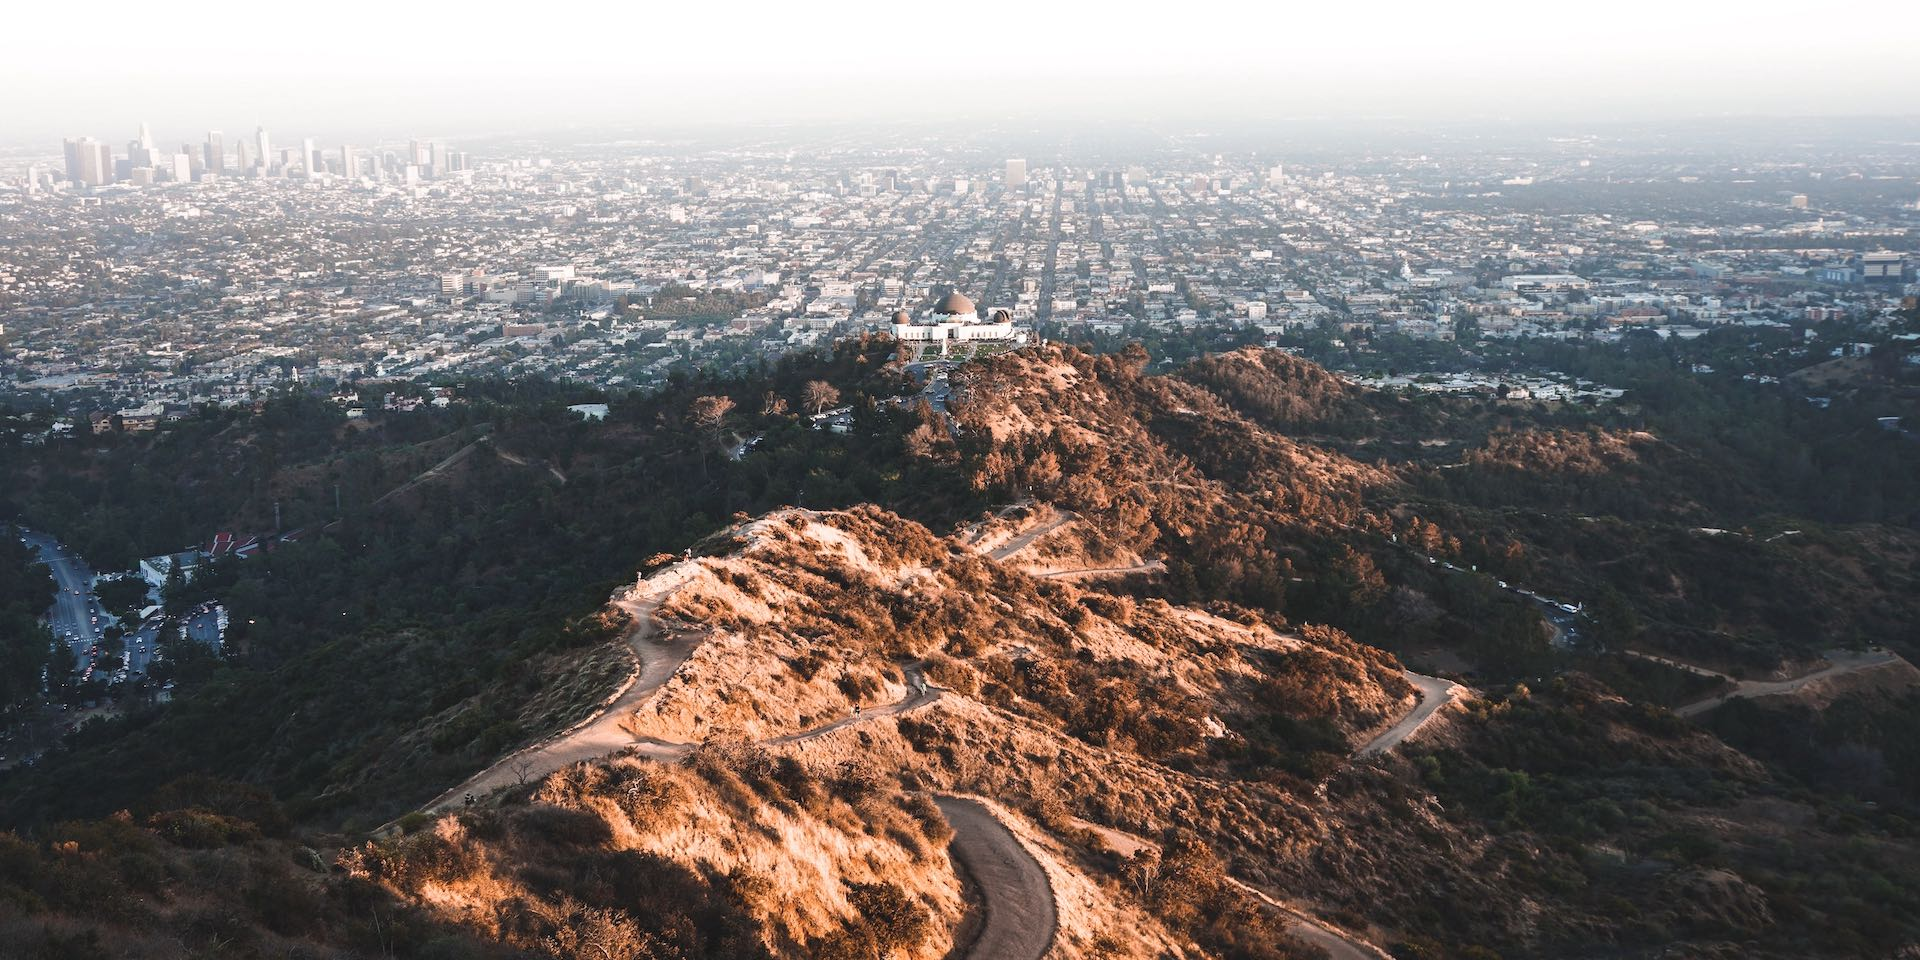 A panoramic vista of Los Angeles